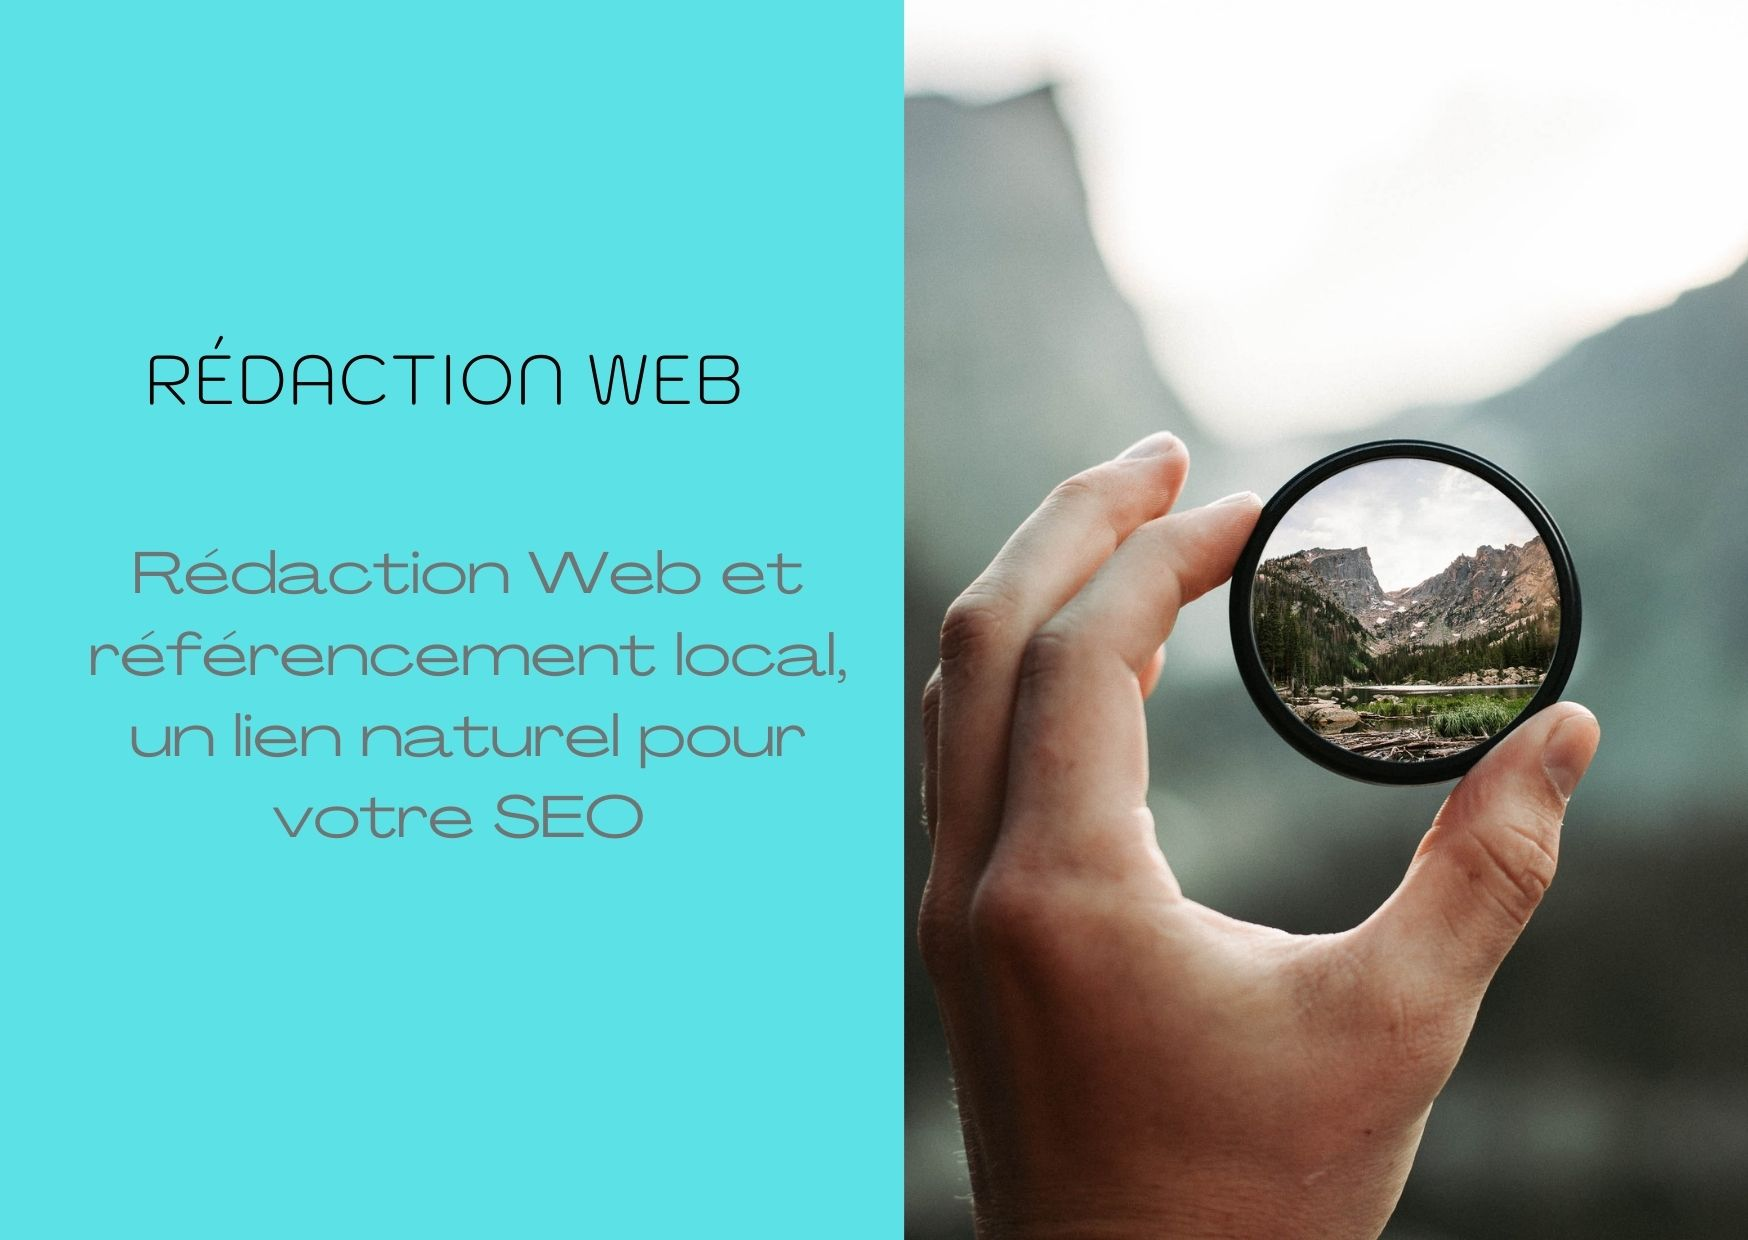 redaction_web_et_referencement_local